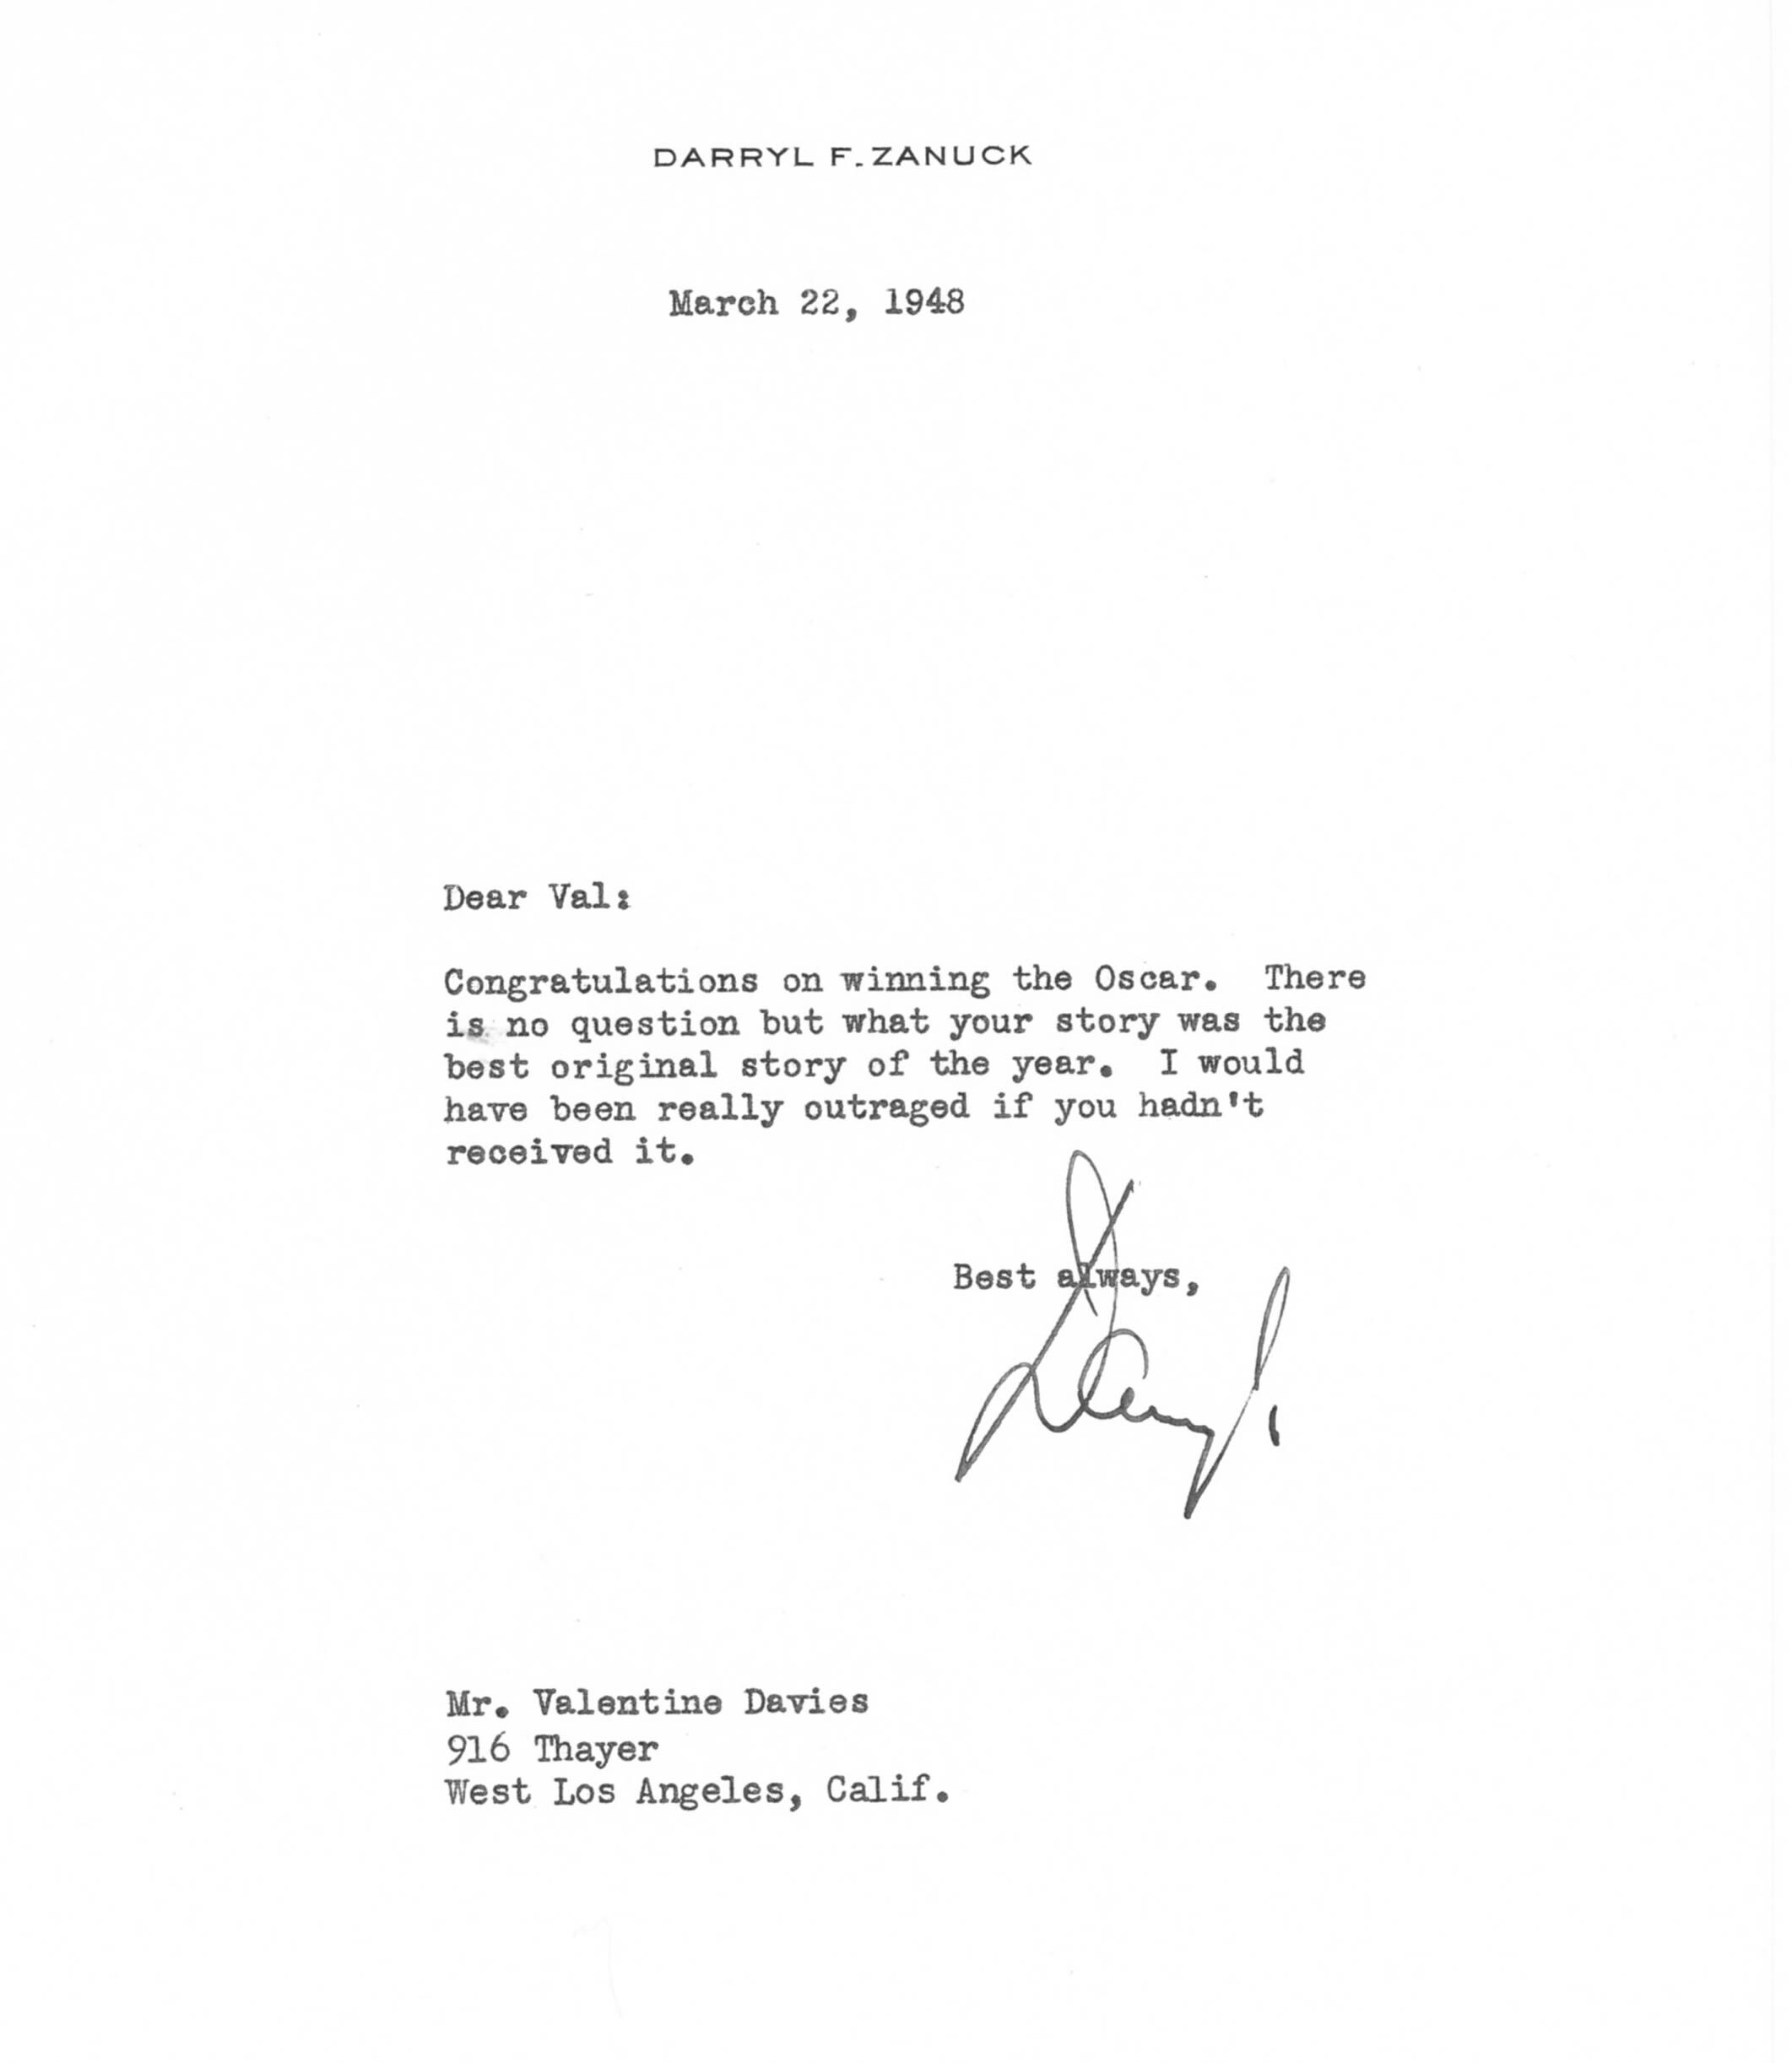 Letter from Darryl F. Zanuck